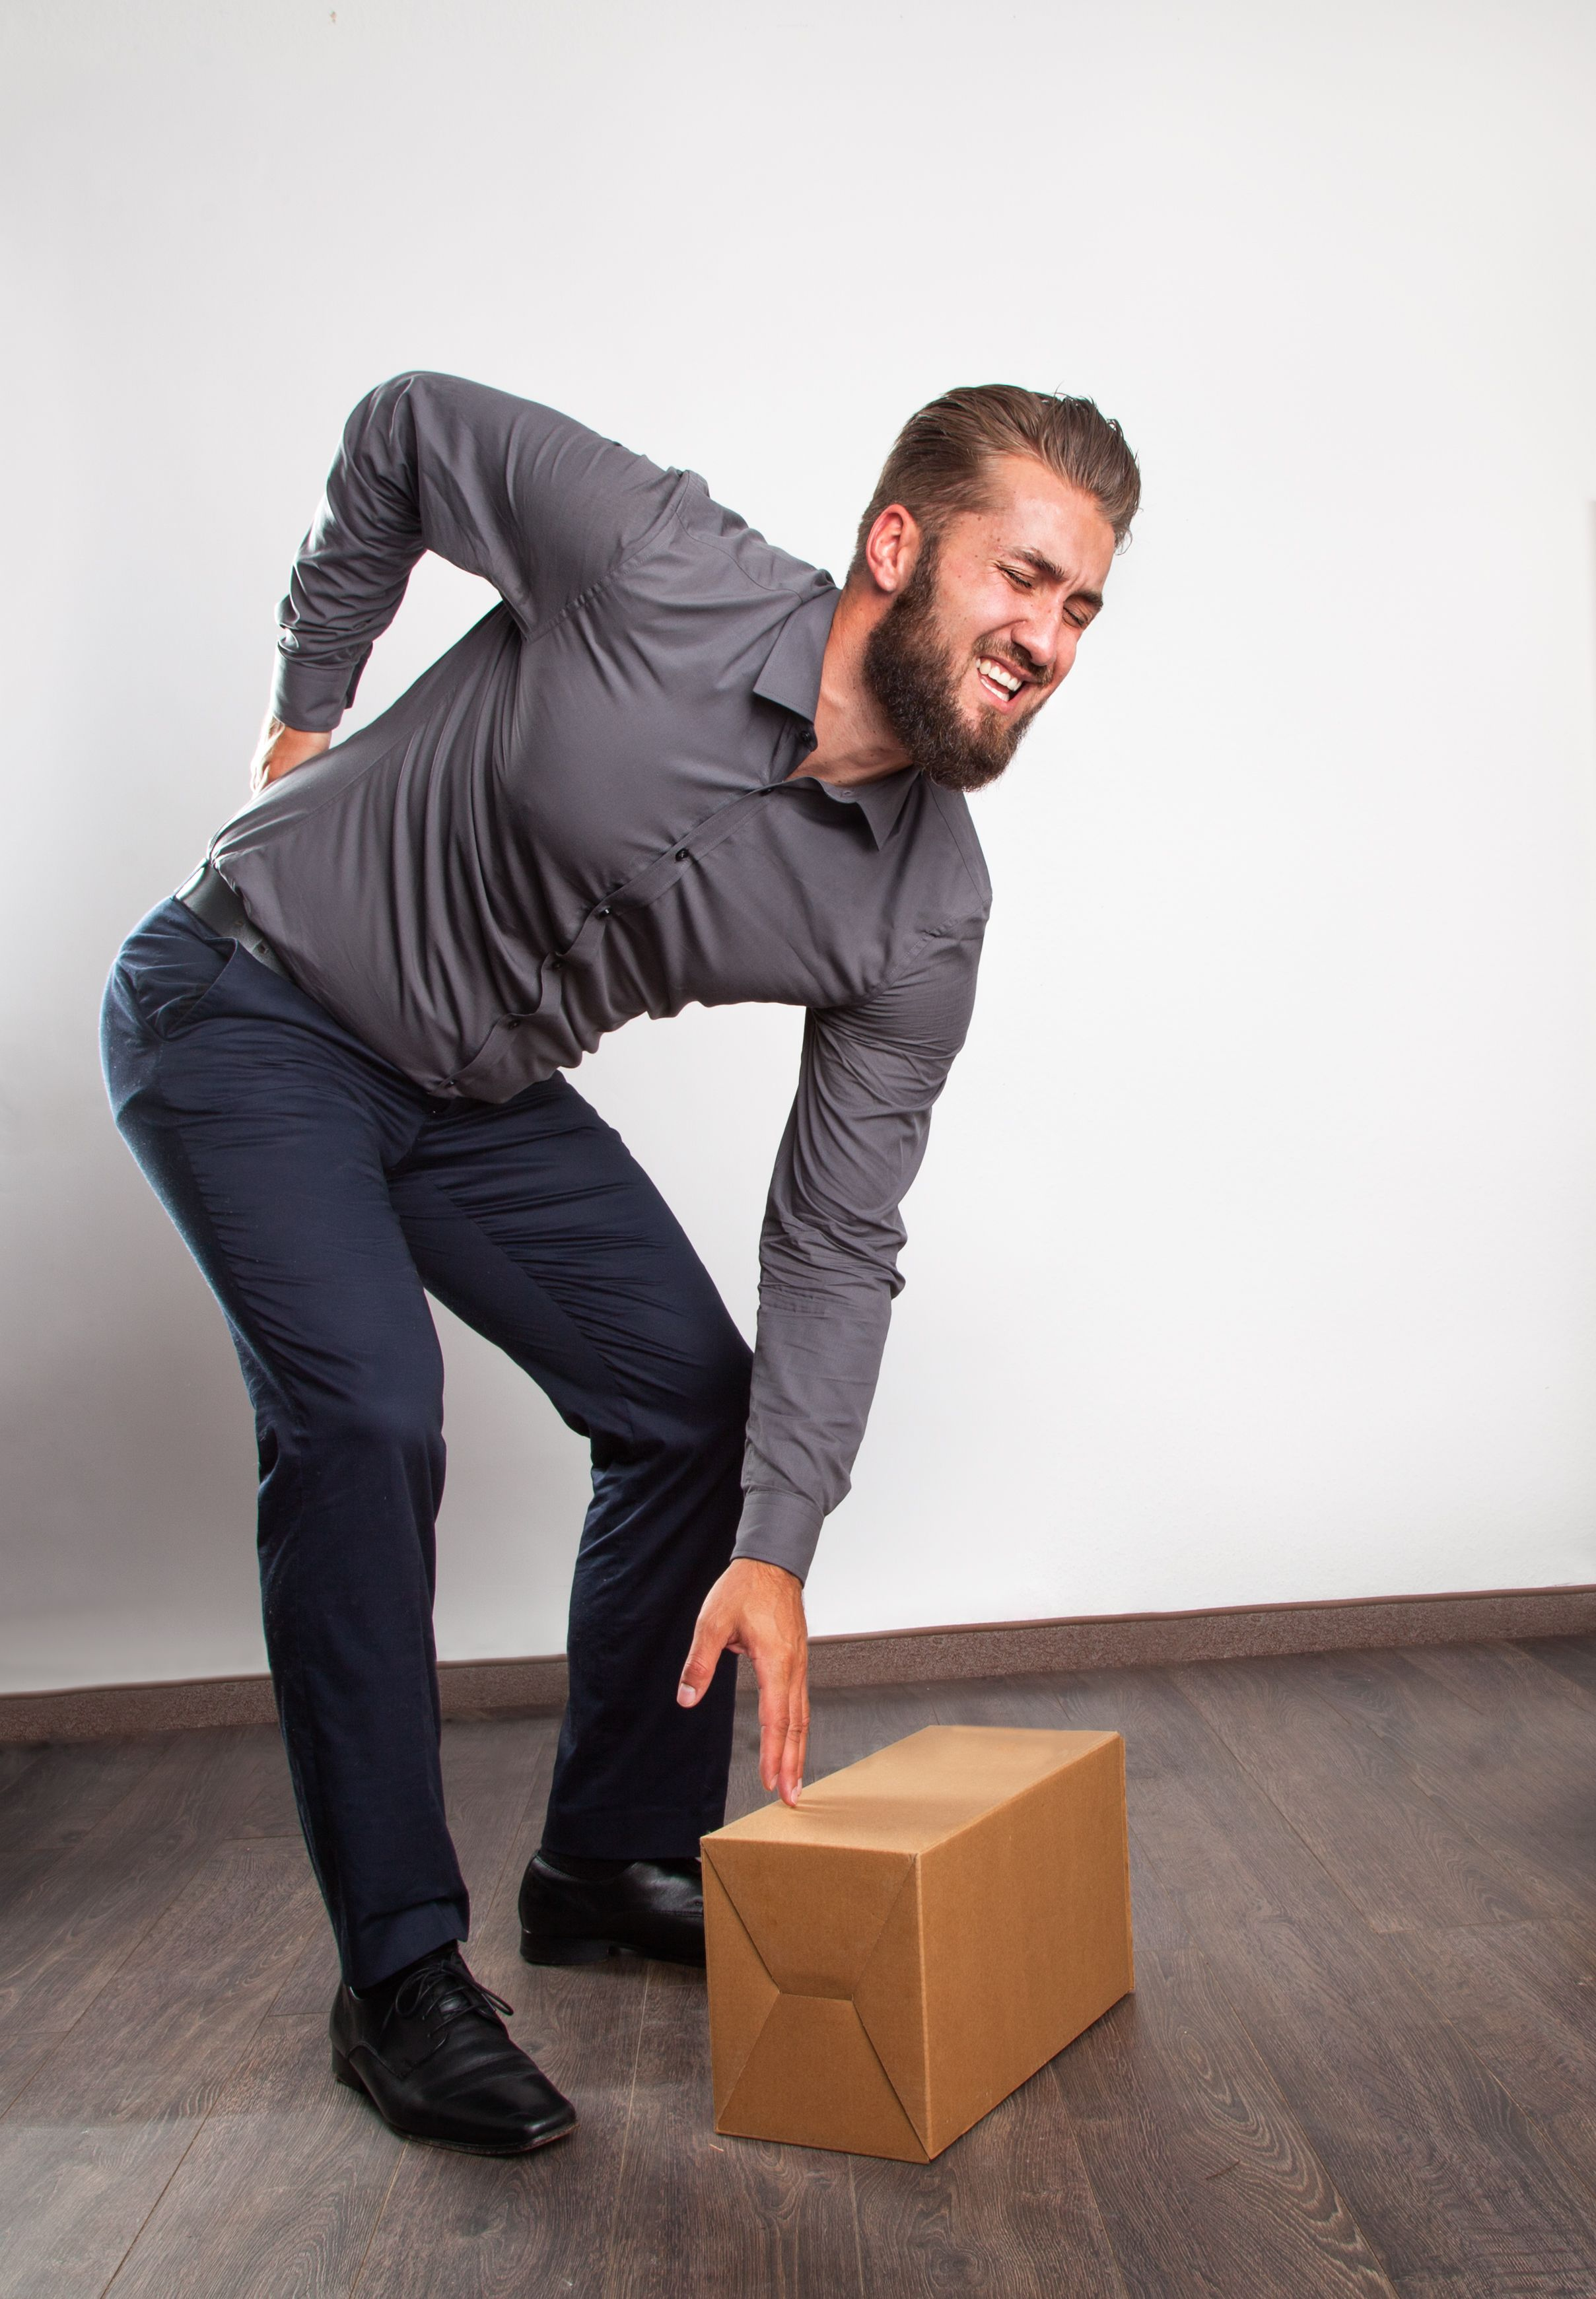 Man With Backache Reaching Box While Bending Against White Wall